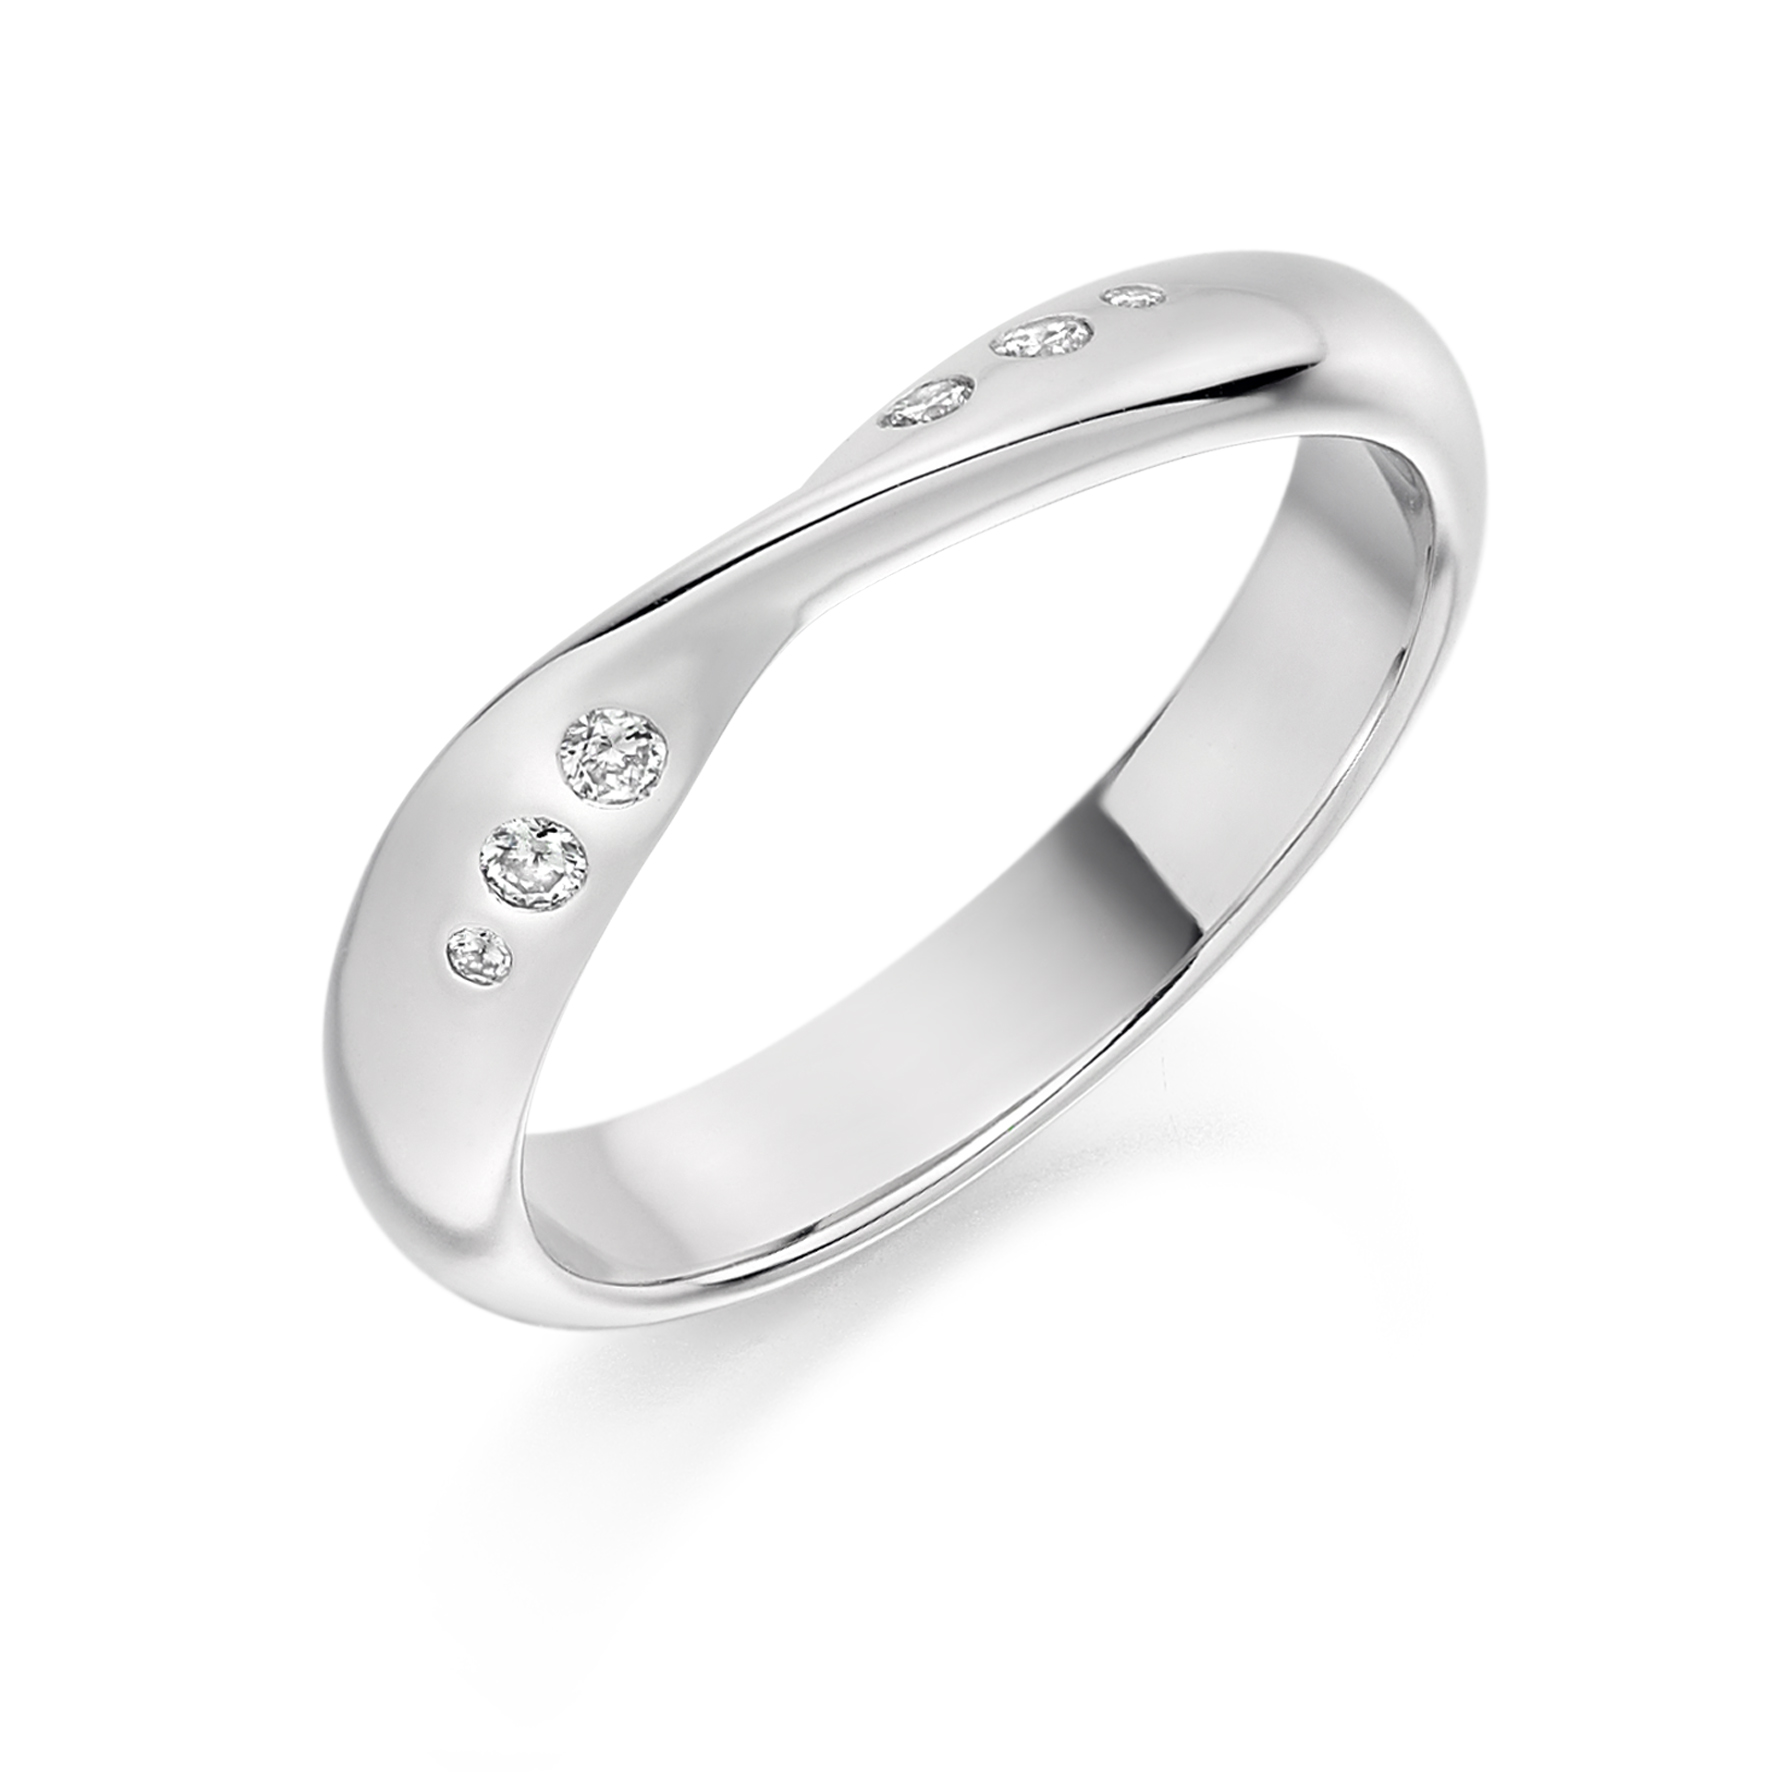 0.09ct brilliant cut diamond curved & shaped style ring